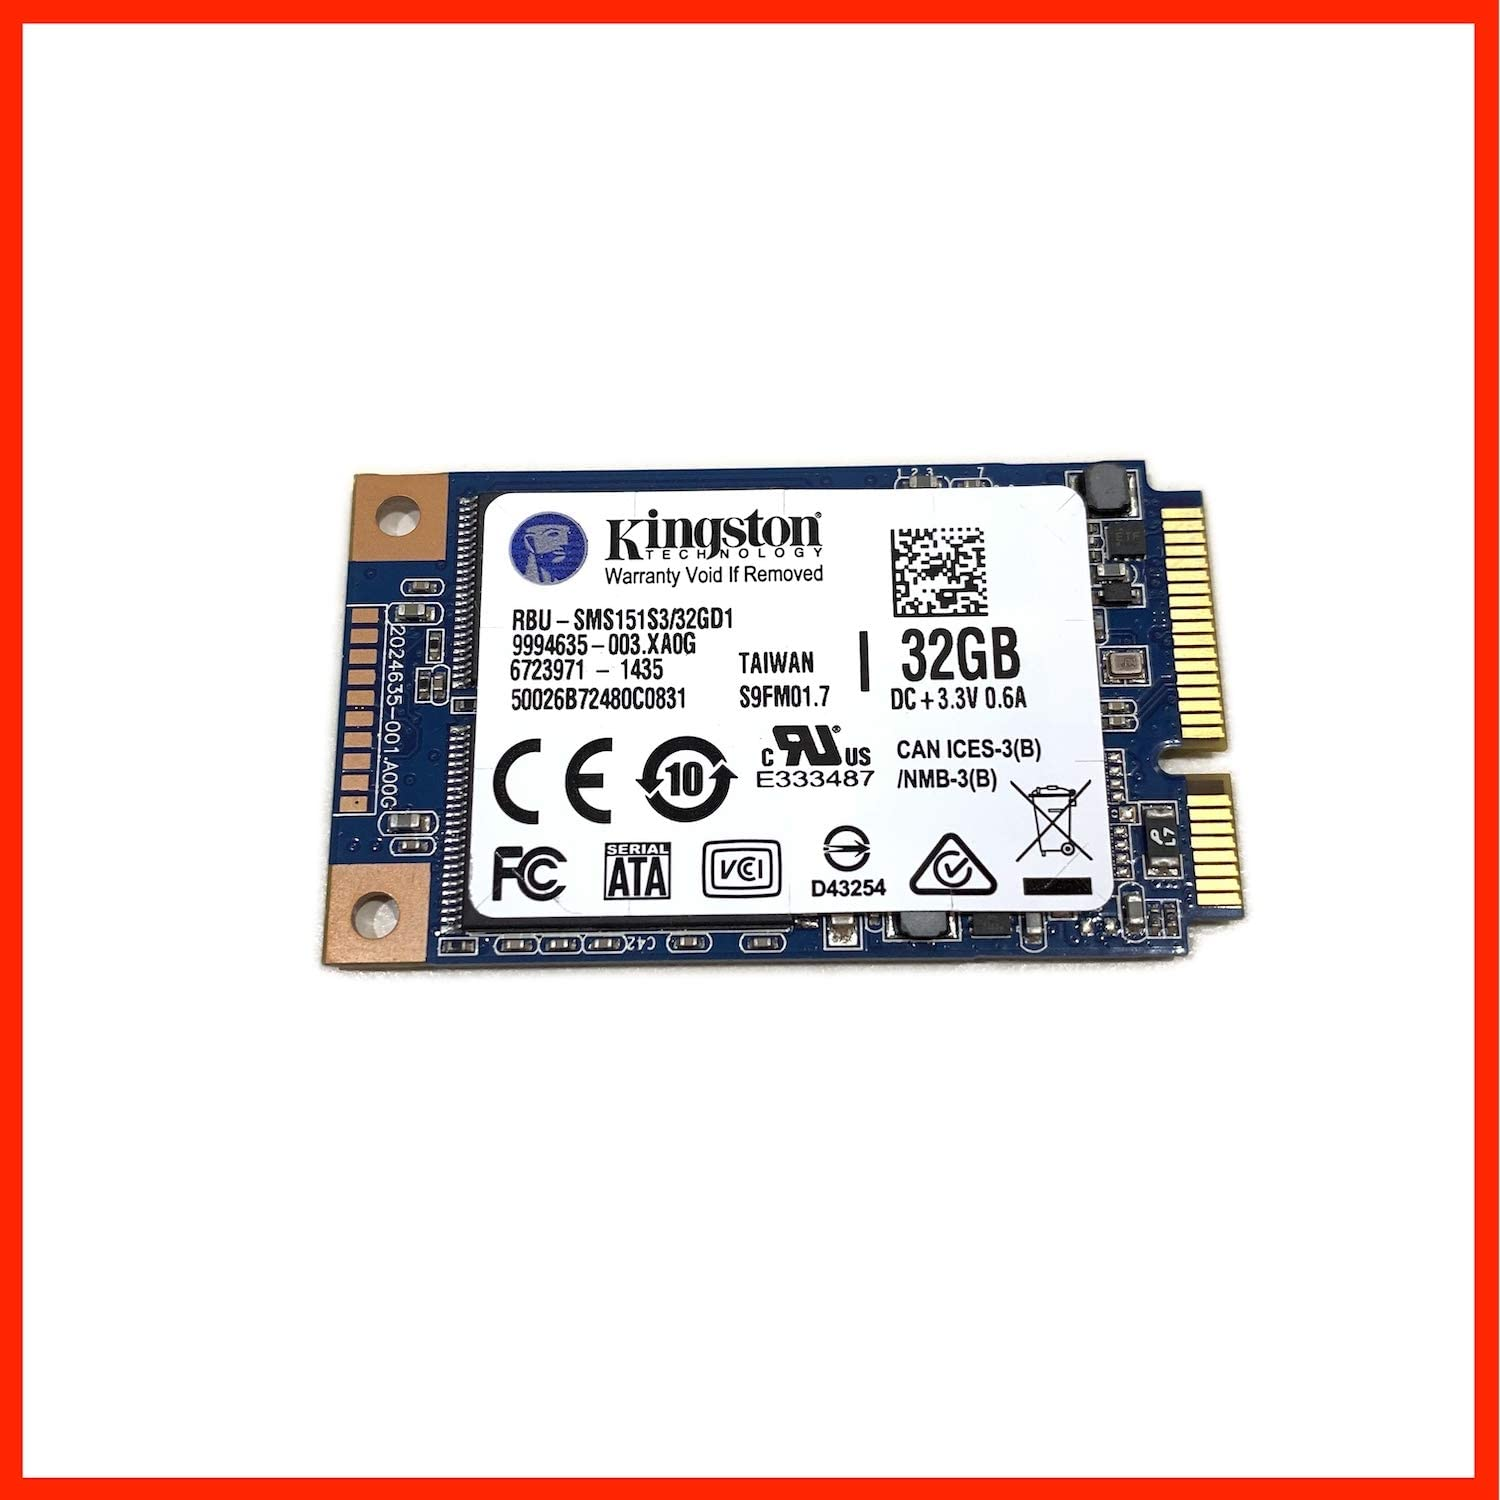 Kingston RBU-SMS151S3 32GD1 - Disco Duro SSD (32 GB, mSATA III, 6 ...